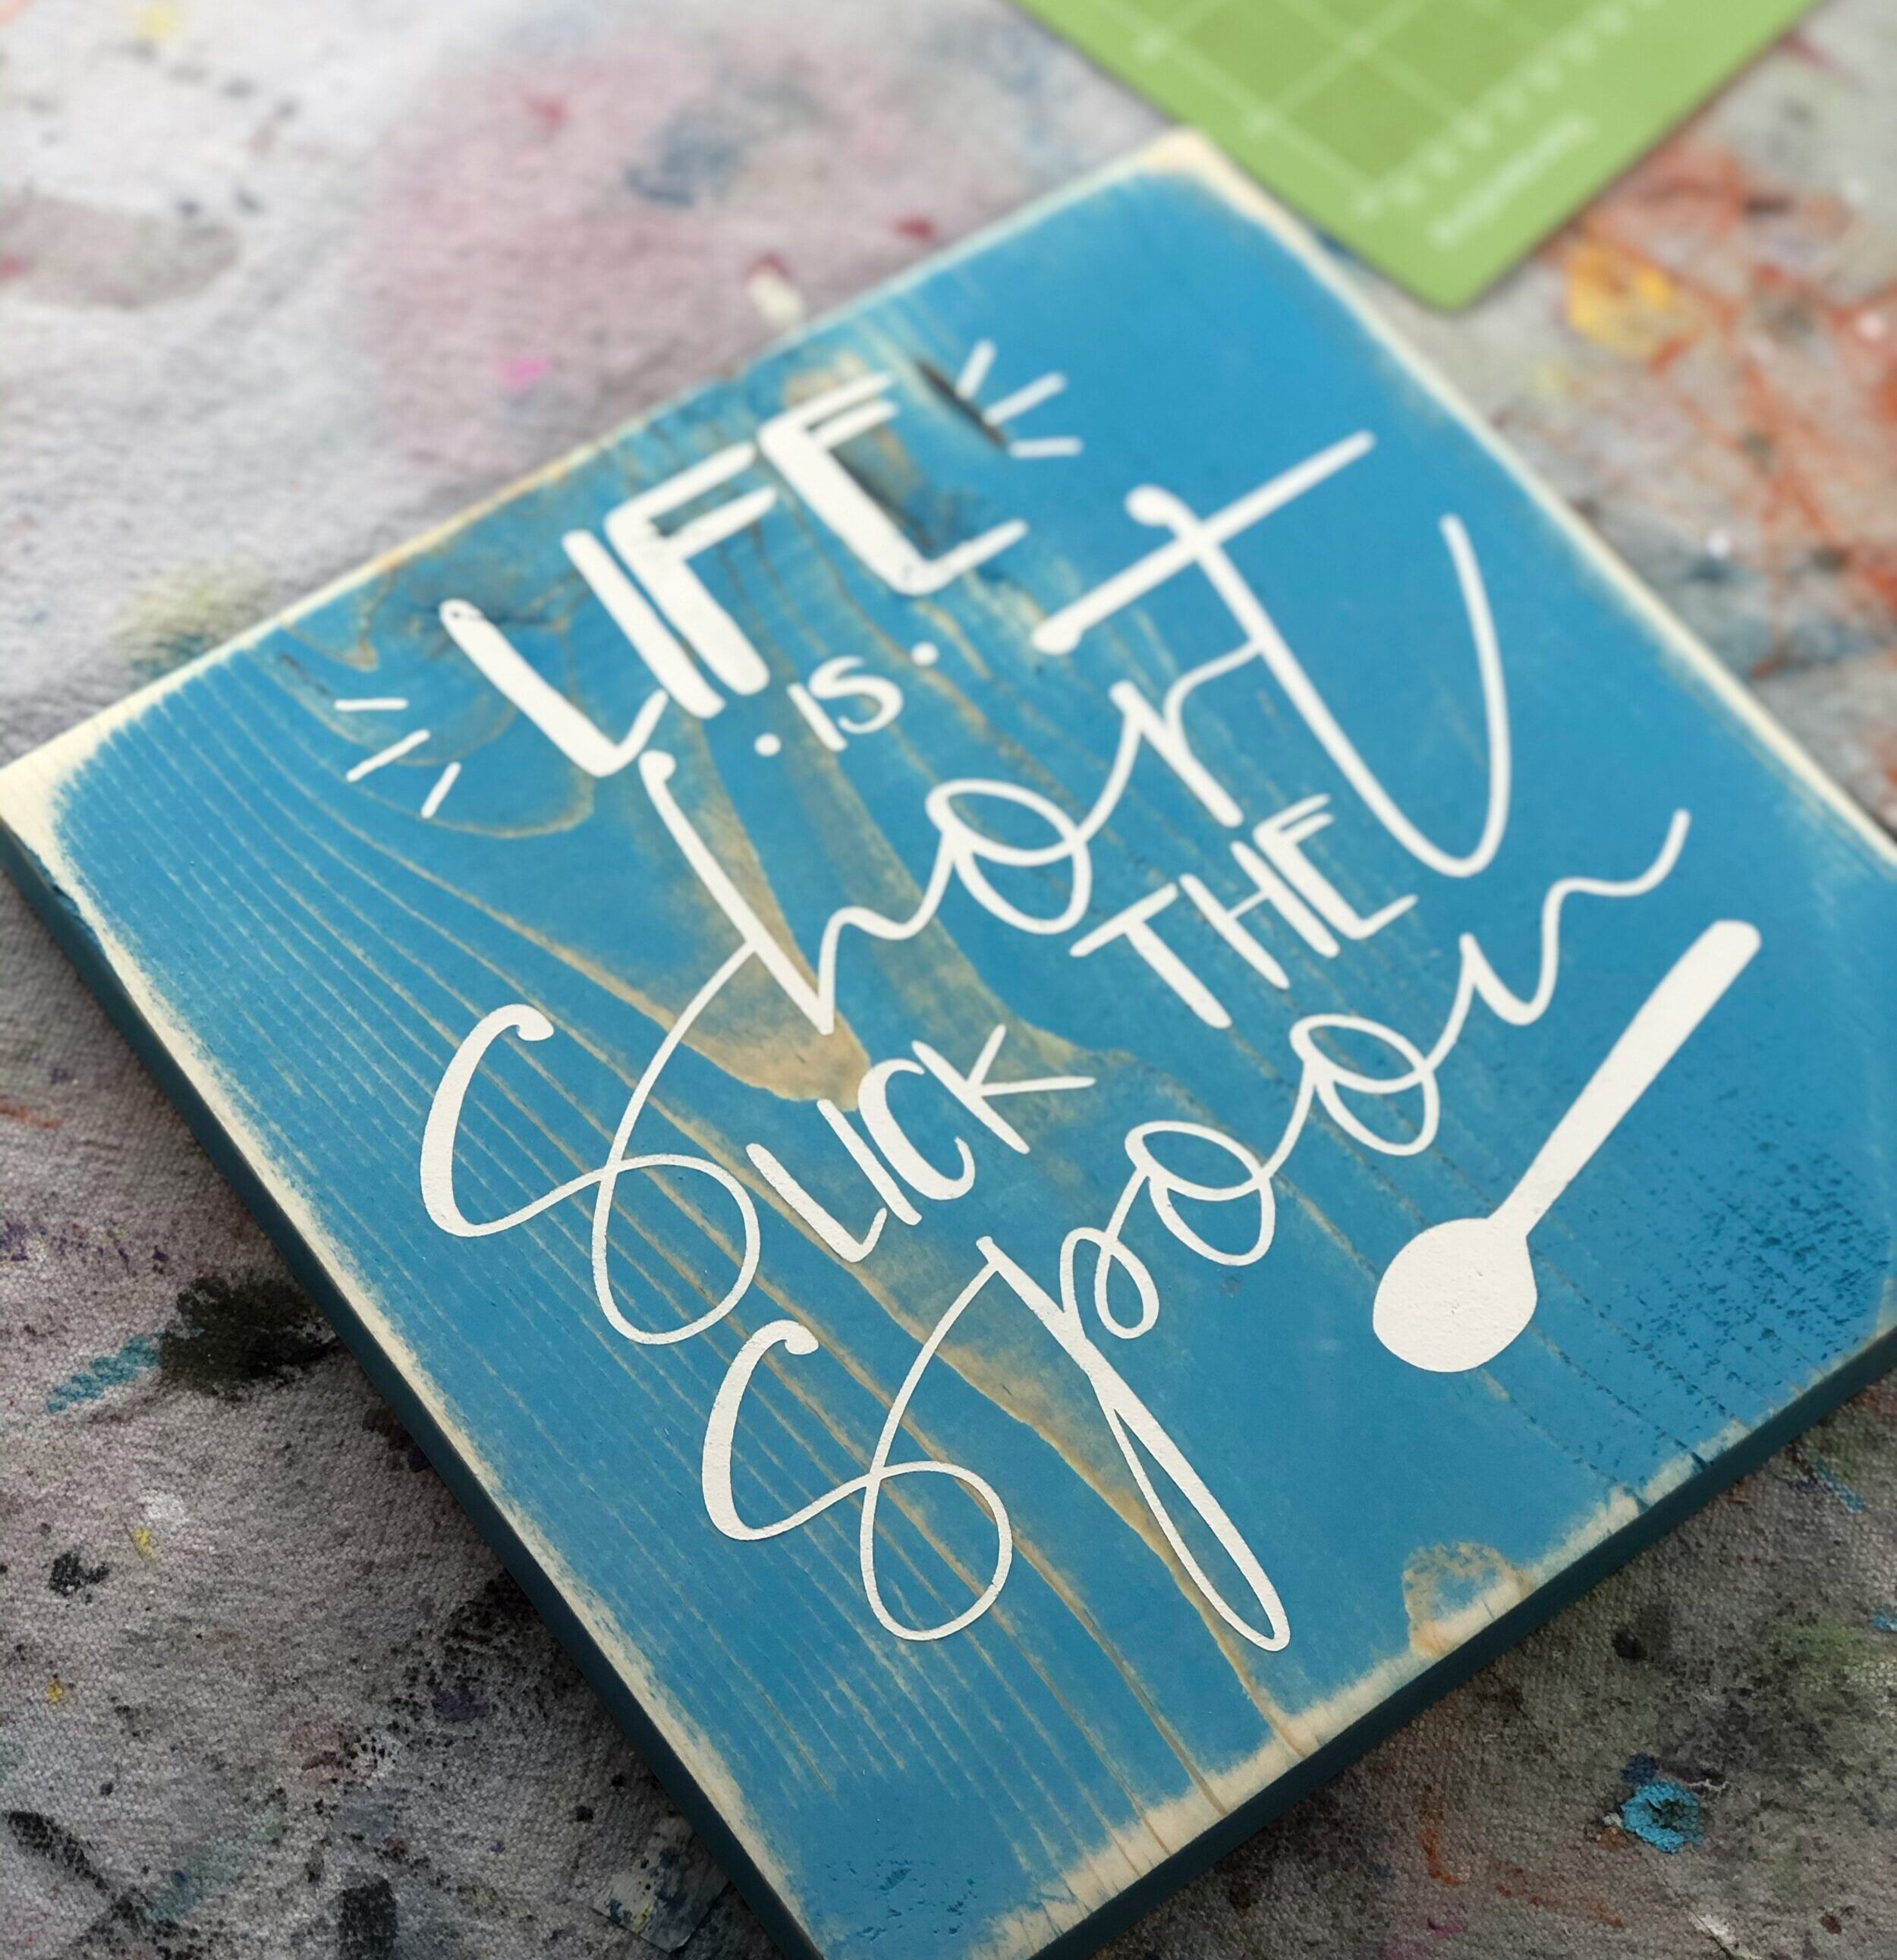 Life is short lick the spoon wood sign. How to paint a wooden kitchen sign with a humorous saying. Stained aqua sign with a white stenciled saying